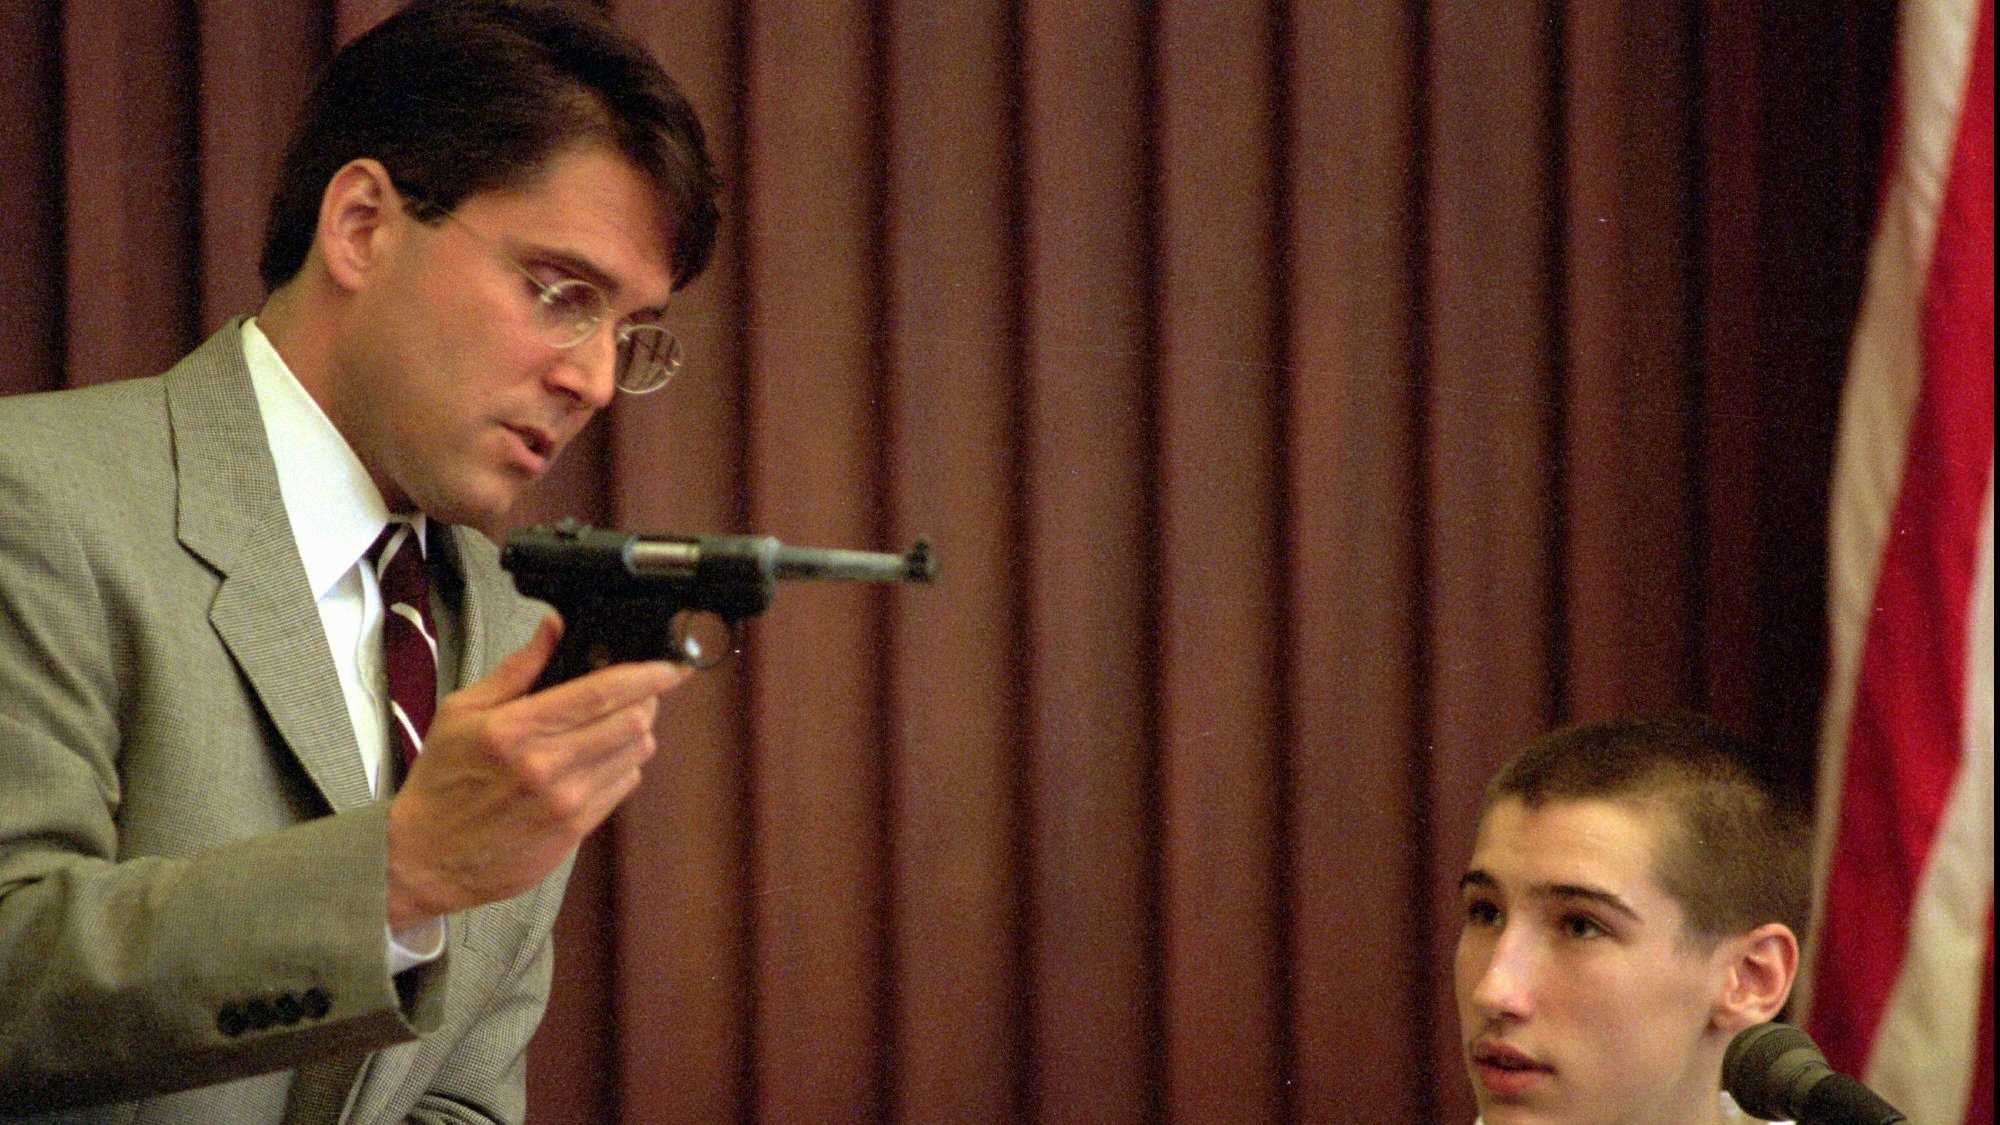 In his second day of testimony at Strafford County Superior Court, in Dover, N.H., Wednesday, May 14, 1997, Jeffrey Dingman, 15, looks on as New Hampshire assistant attorney general John Kacavas shows the .22 caliber pistol that was used to kill Jeffrey's parents, Vance and Eve Dingman. Jeffrey is testifying against his older brother, Robert, 18, who is being tried on two counts of first degree murder.